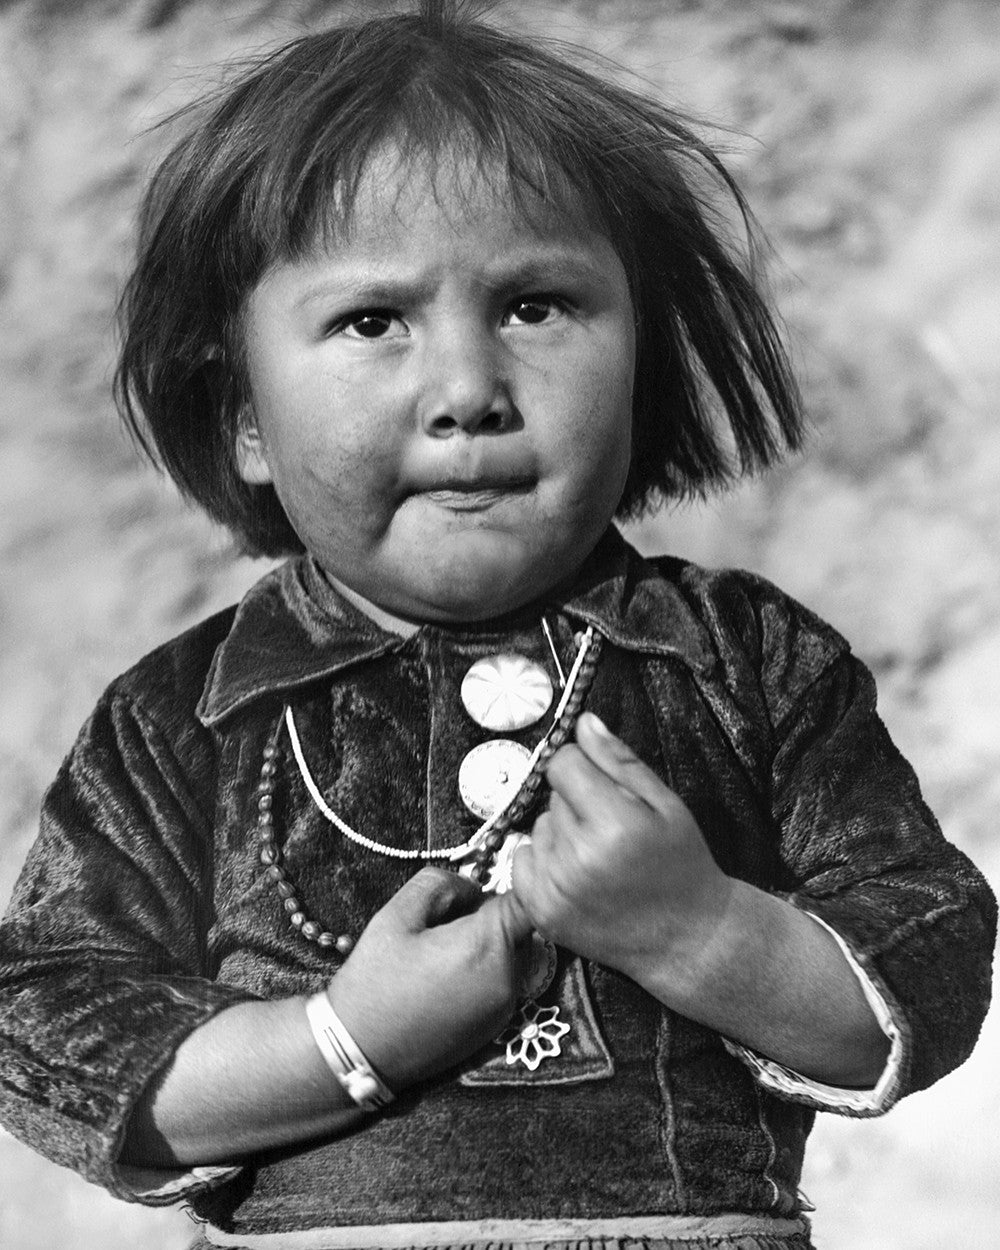 Black and White Vintage Photography by Senator Barry Goldwater (Hopi Child) - Art Prints and Wall Decor